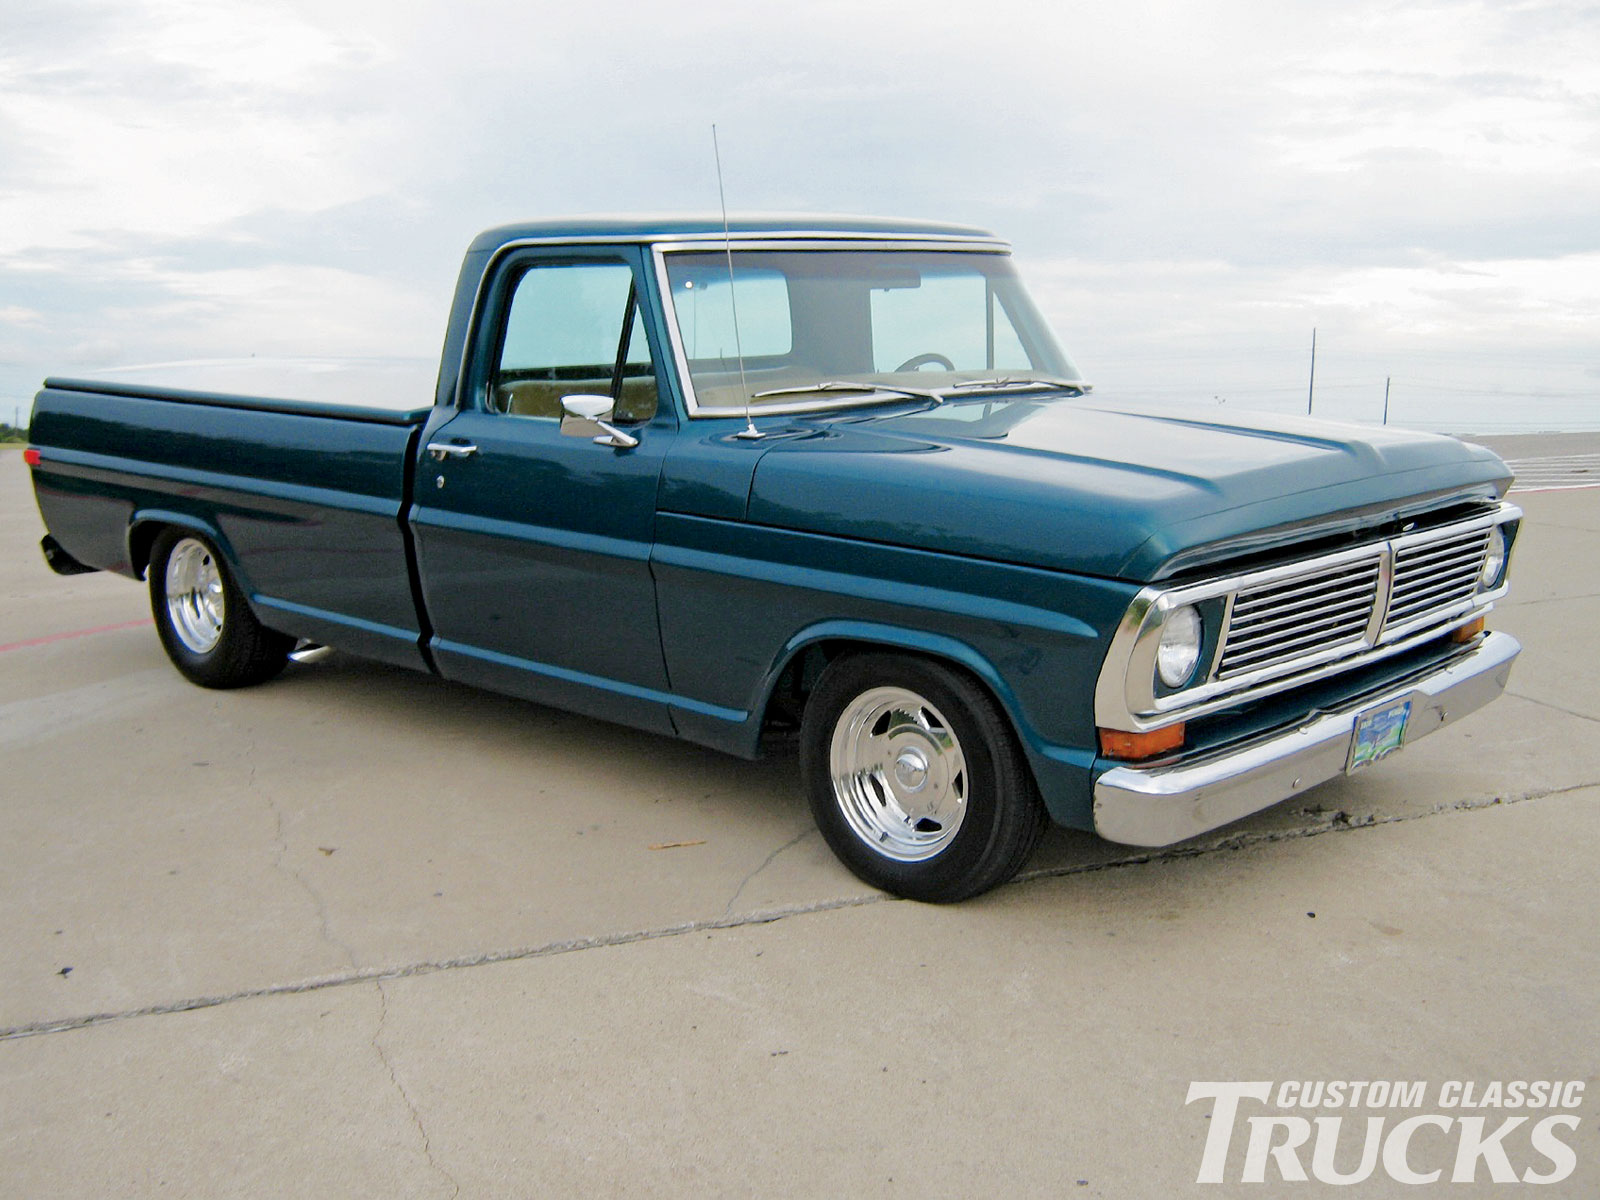 1970 ford f100 pickup truck restored vintage truck HD Background 1600x1200